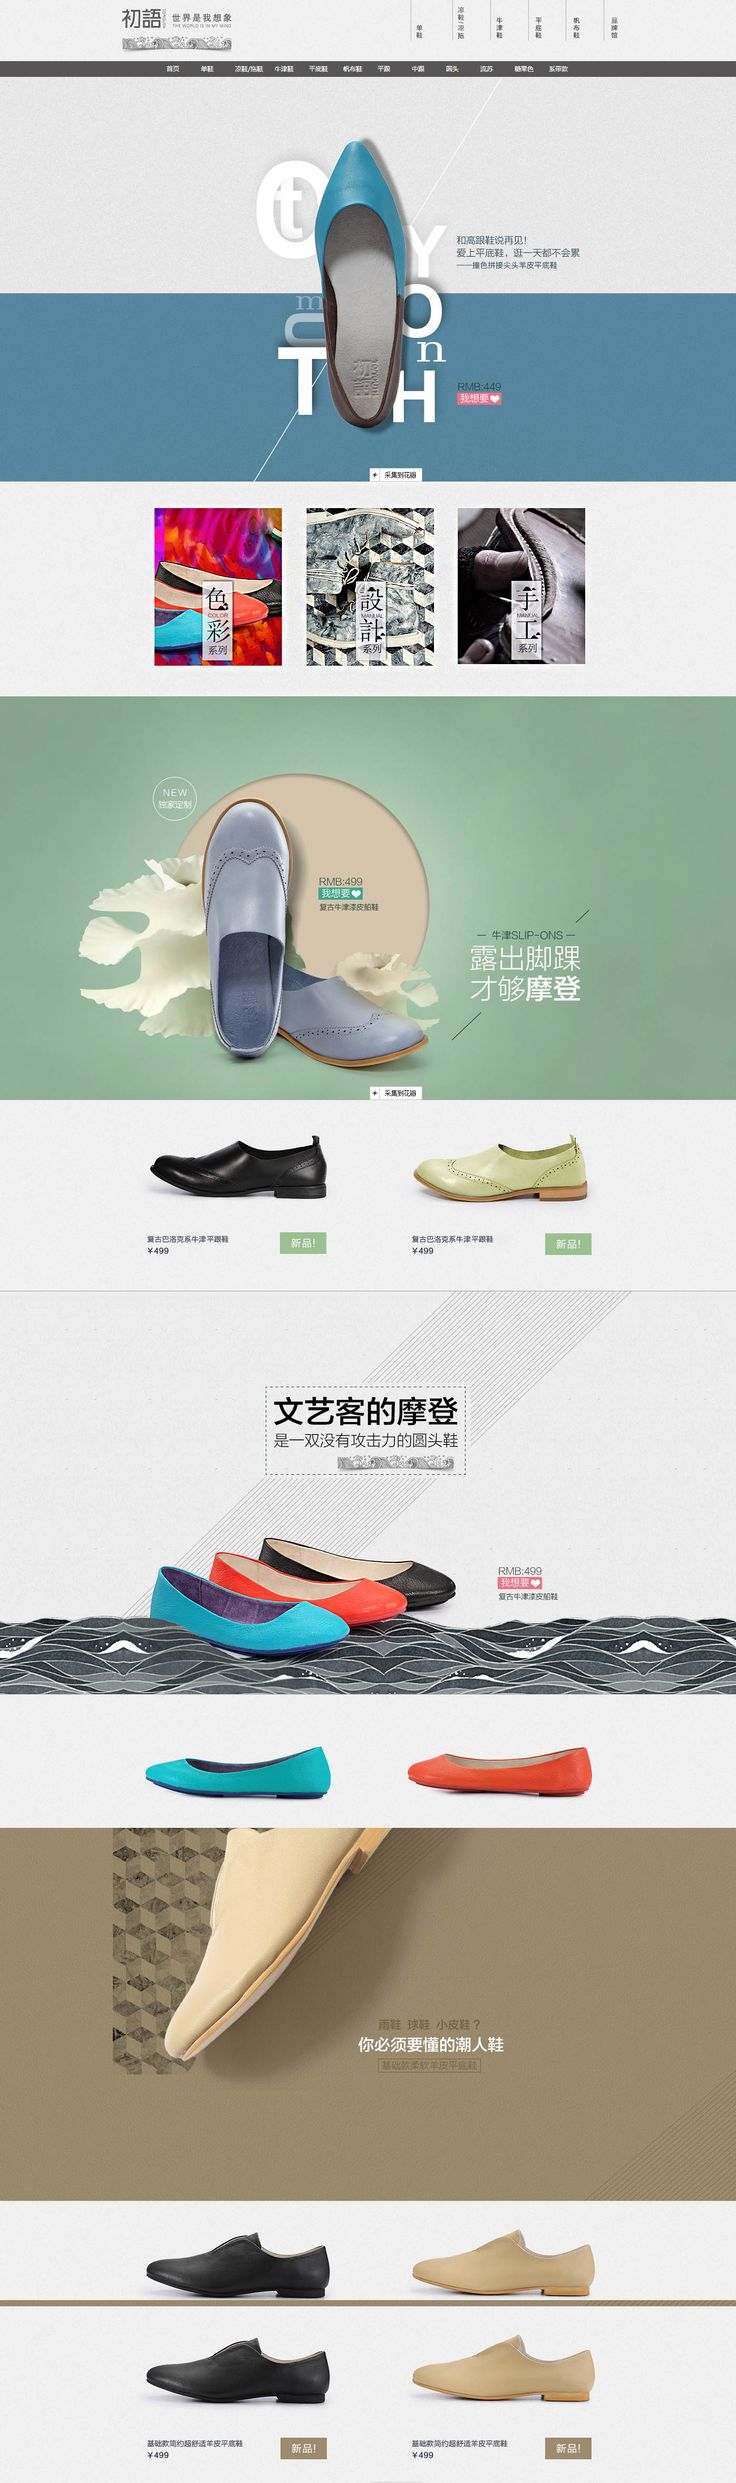 Early language flagship store shoes Taobao shop Taobao home details page copy .jpg